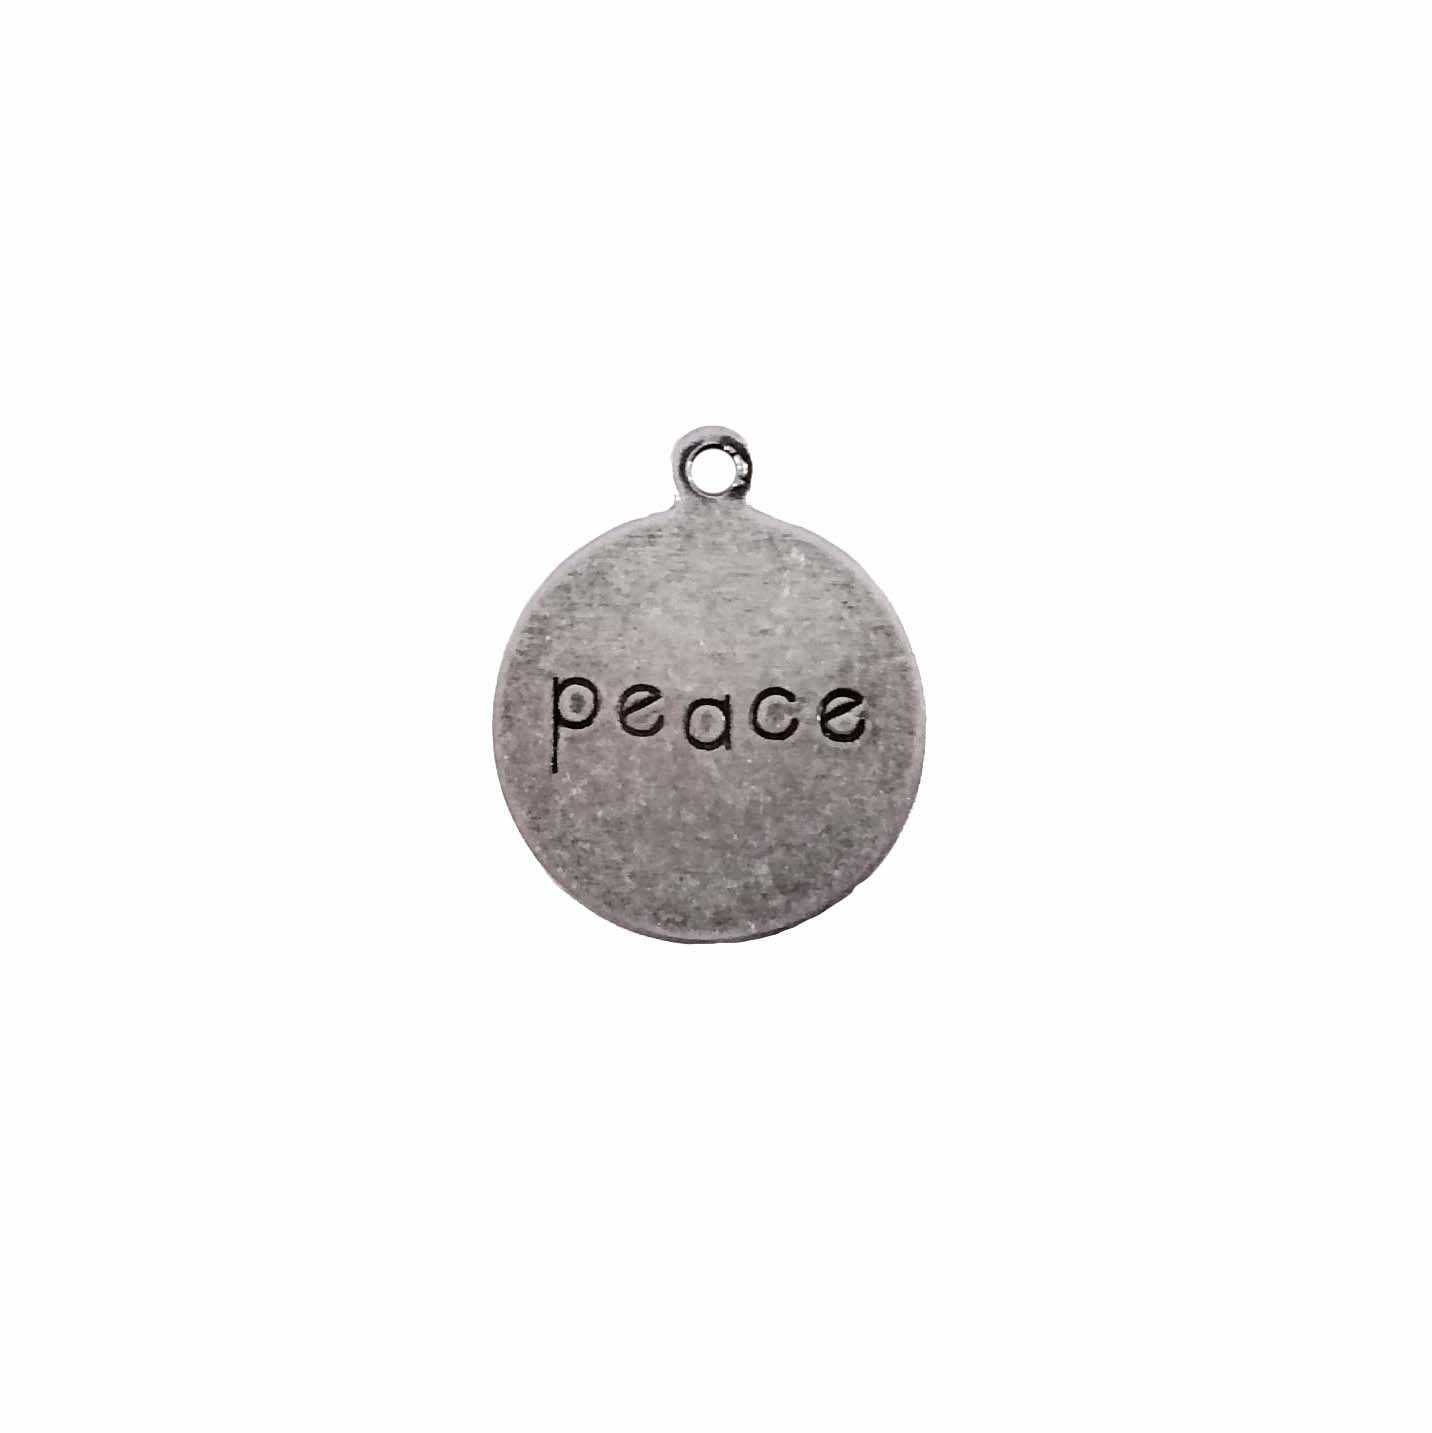 peace charm, peace pendant, peace jewelry, brass stampings, vintage jewelry findings, 12mm, top hanging, silverware, nickel free, charm jewelry, charm, vintage 60's style, 60's style jewelry, B'sue Boutiques, silverplate, antique silver, 09457